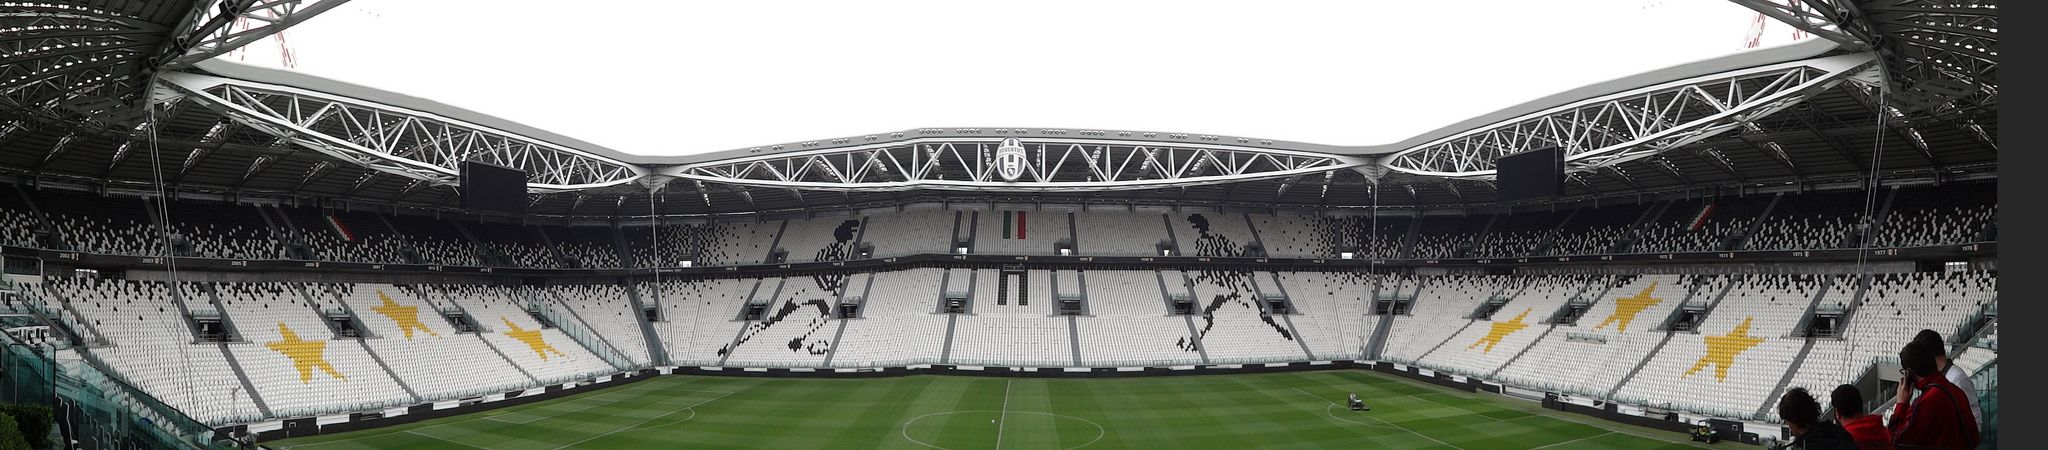 allianz stadium of turin juventus stadium stadiumdb com stadiumdb com stadium database